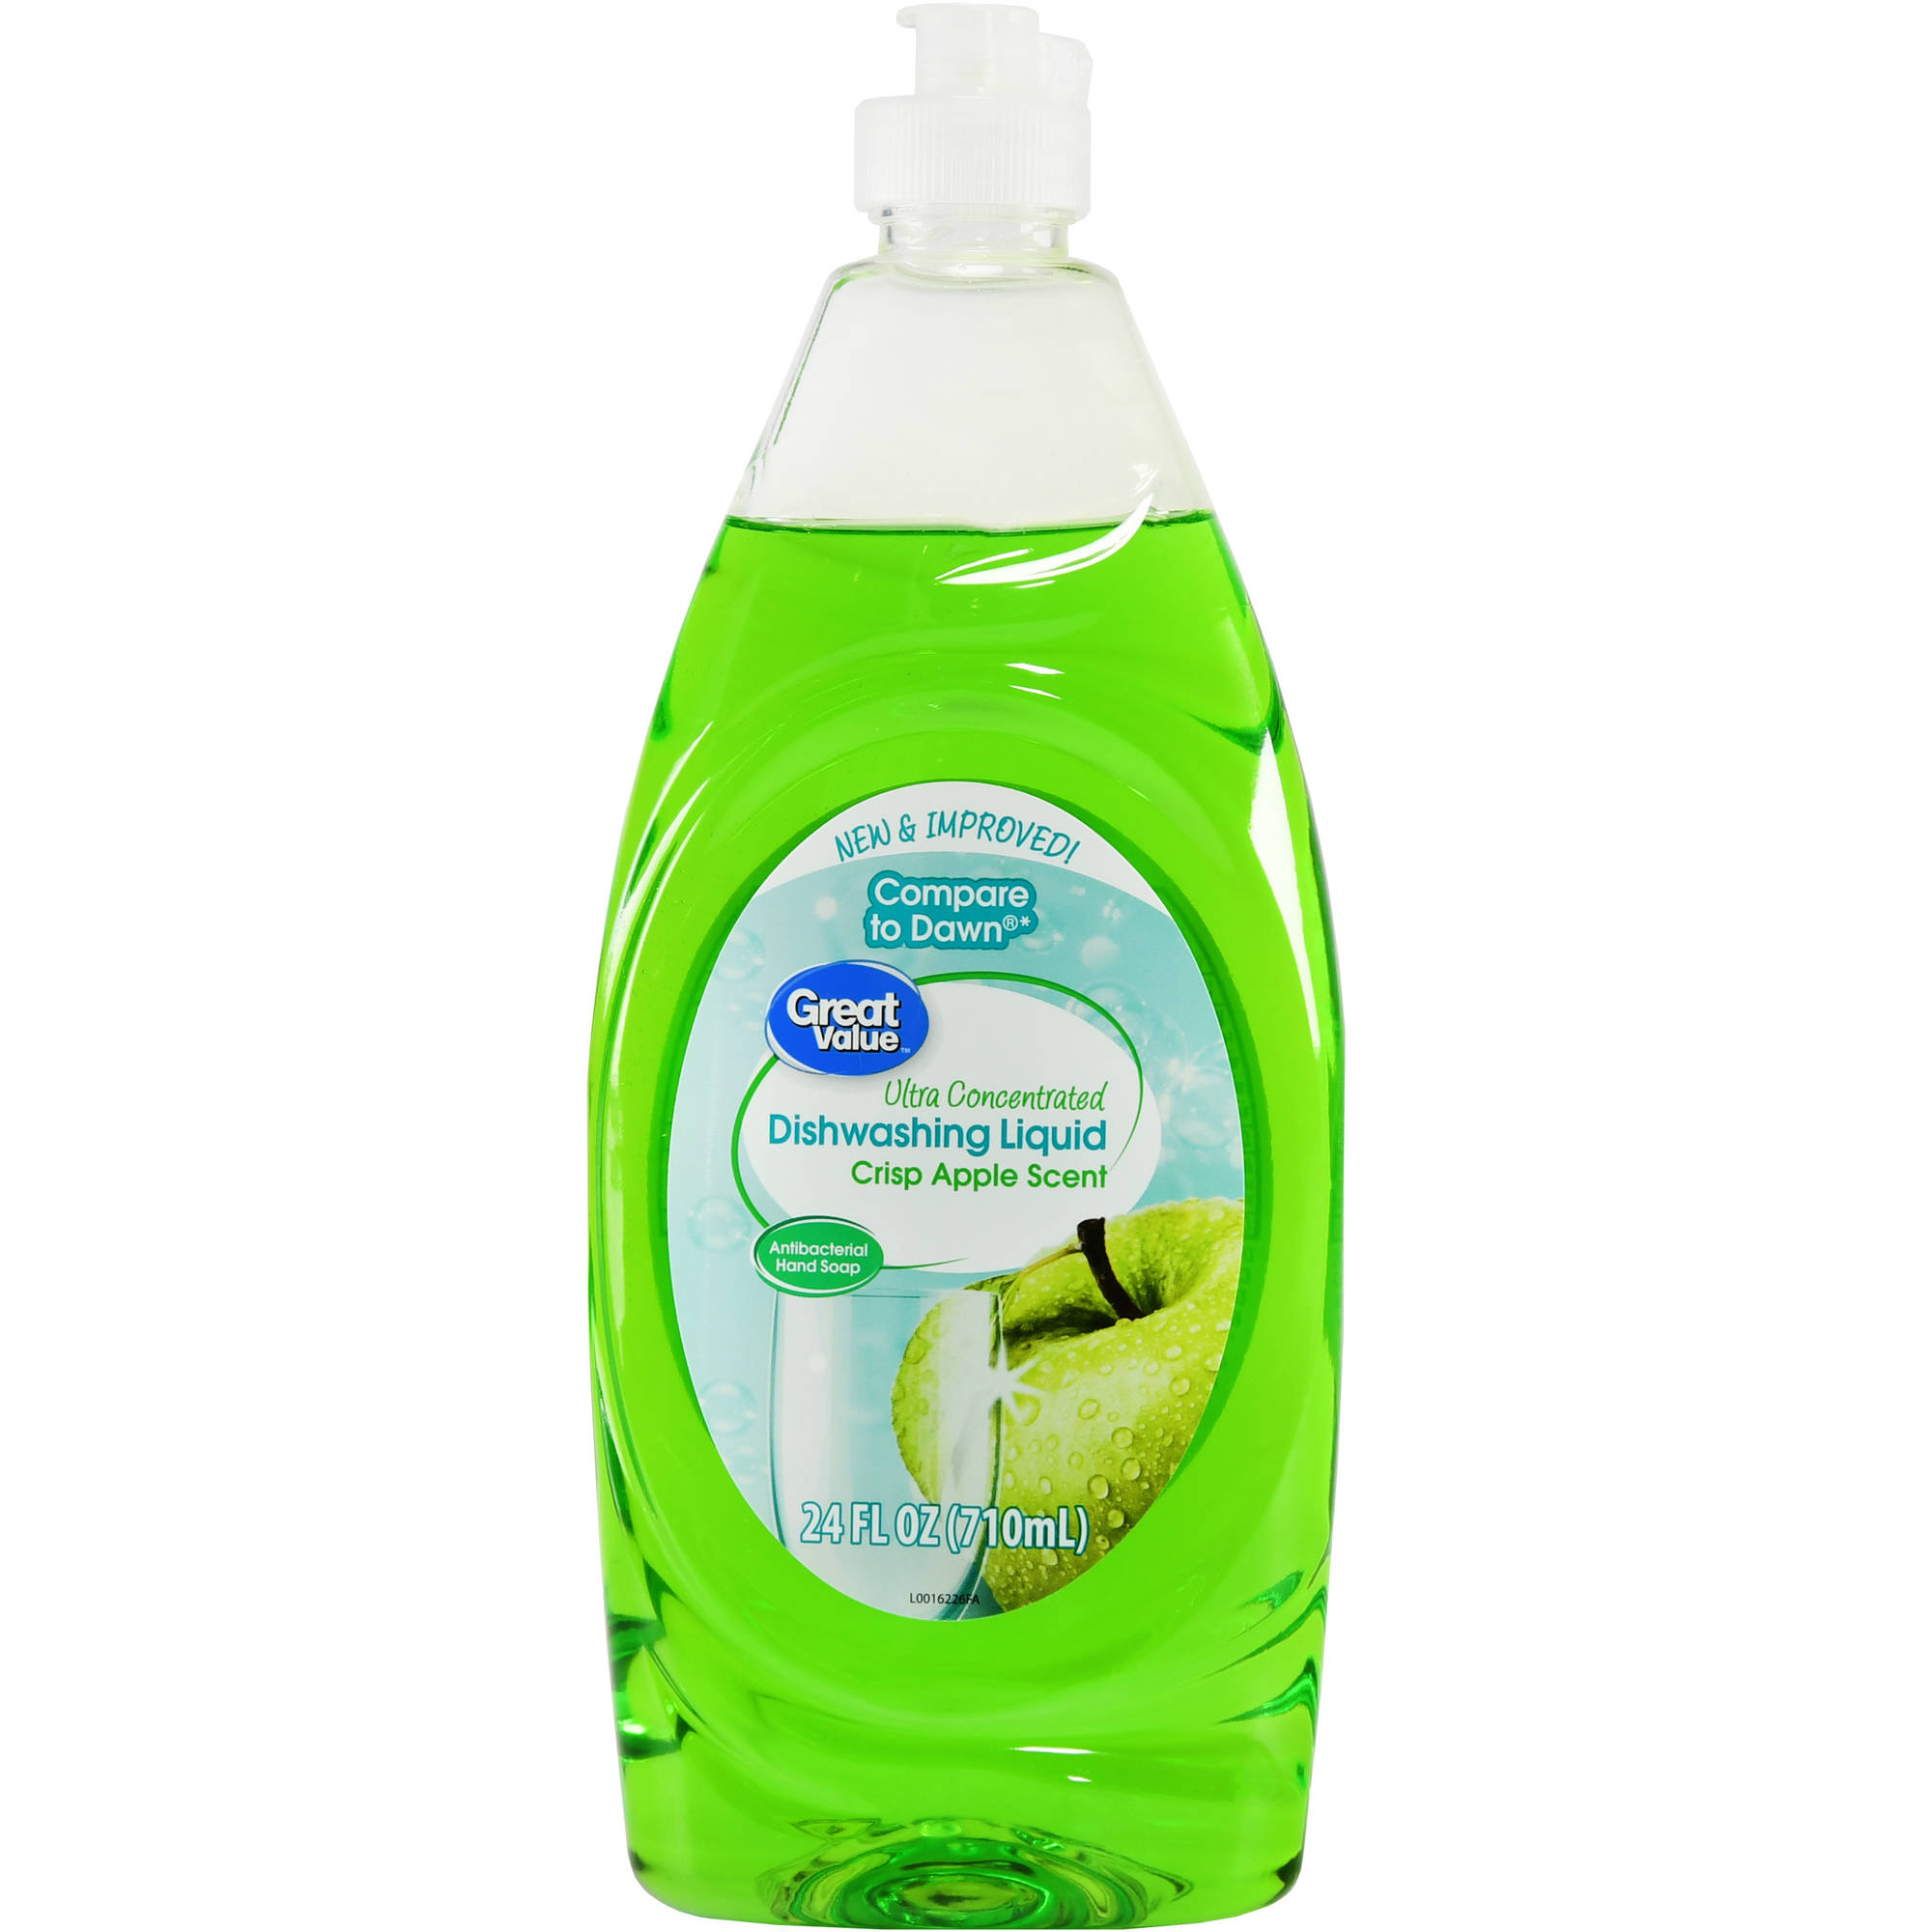 Great Value Ultra Concentrated Dishwashing Liquid, Crisp Apple Scent, 24 fl oz